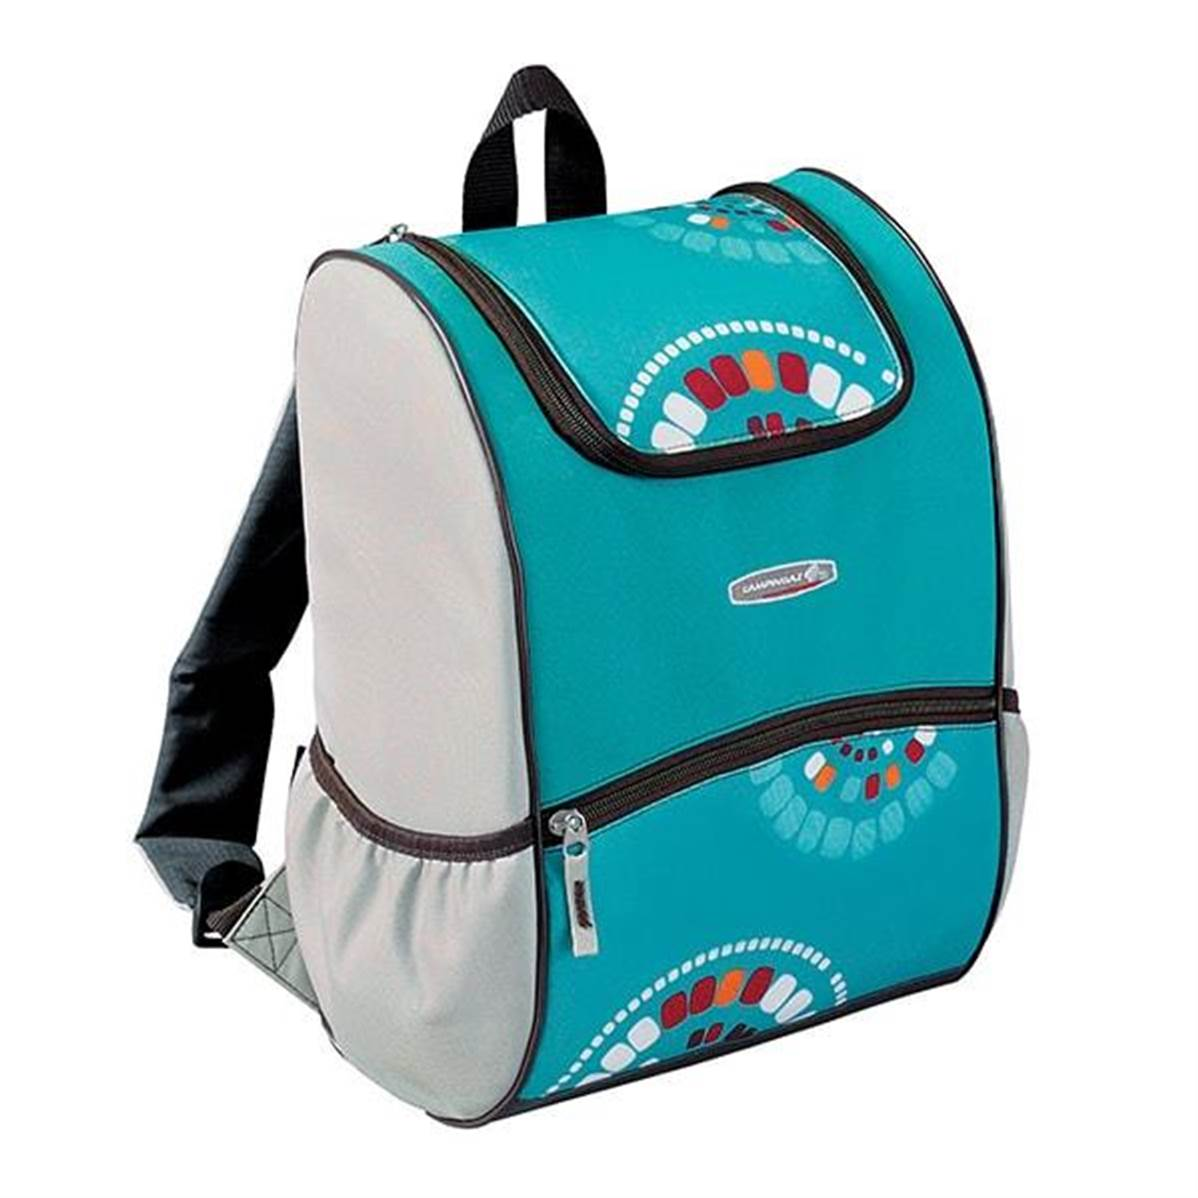 SAC A DOS ISOTHERME DAY BACPAC 9L ETHNIC